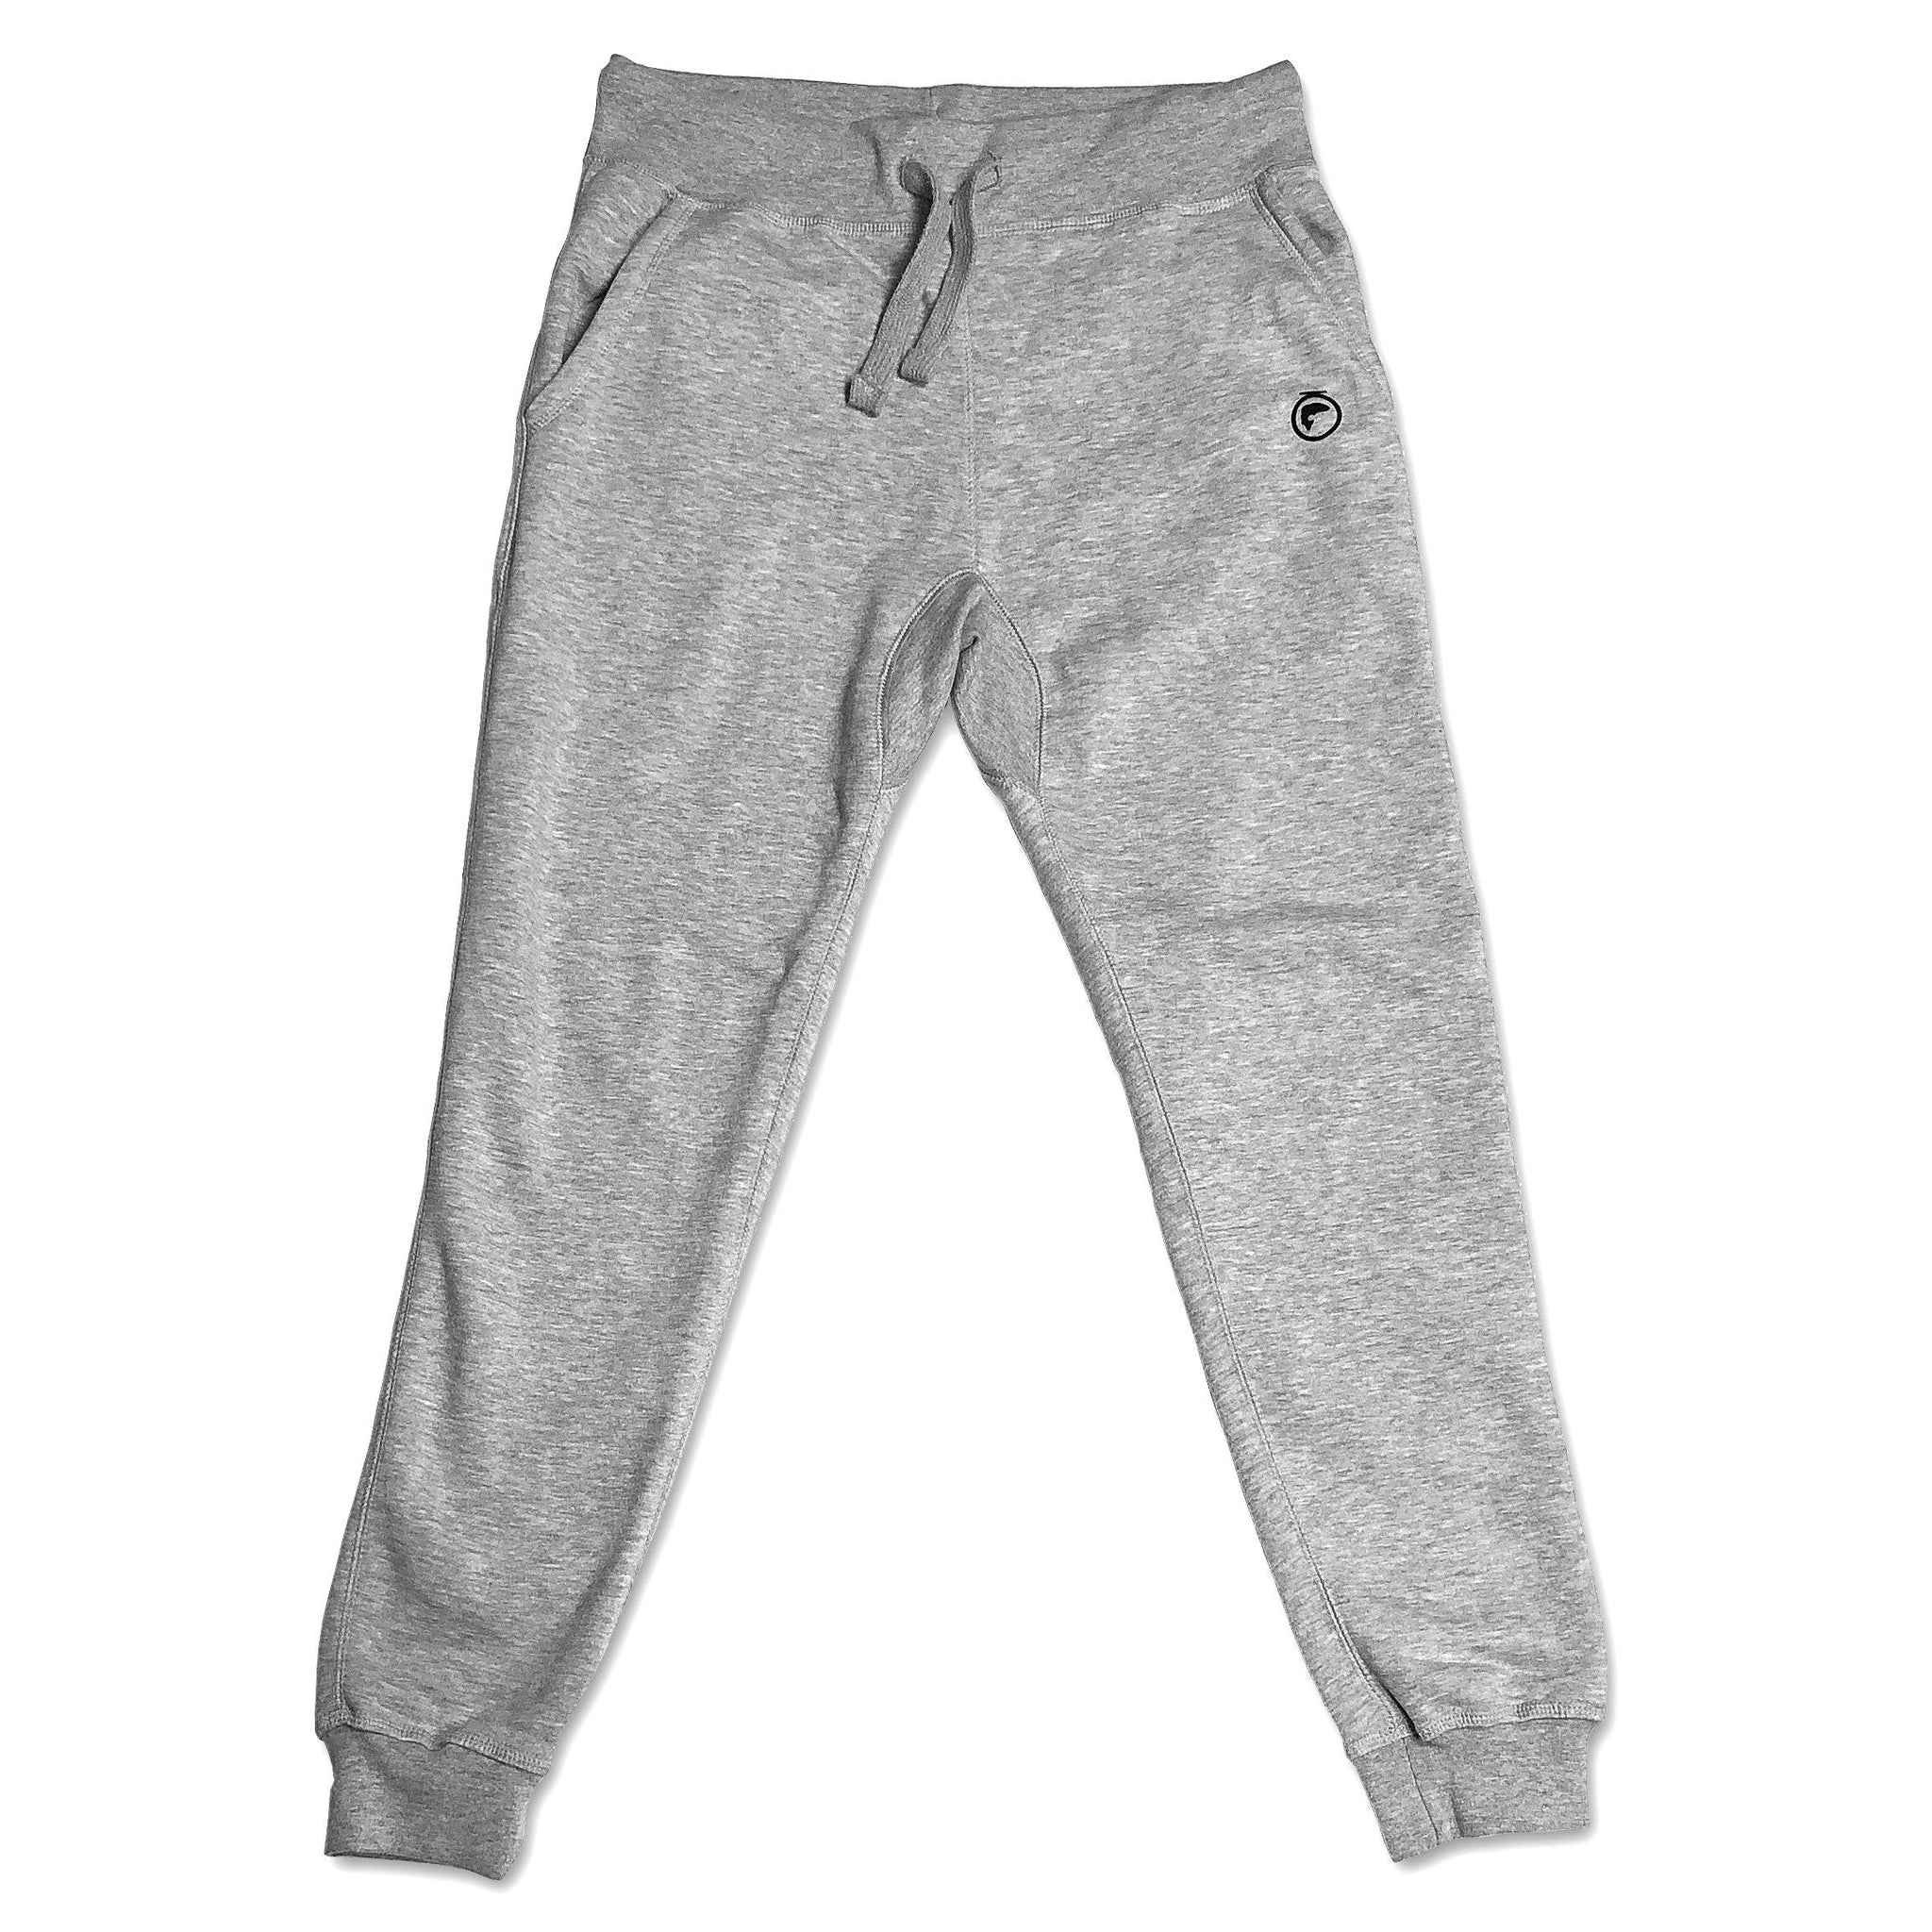 Fleece Jogger Sweatpants (Unisex) - Gray